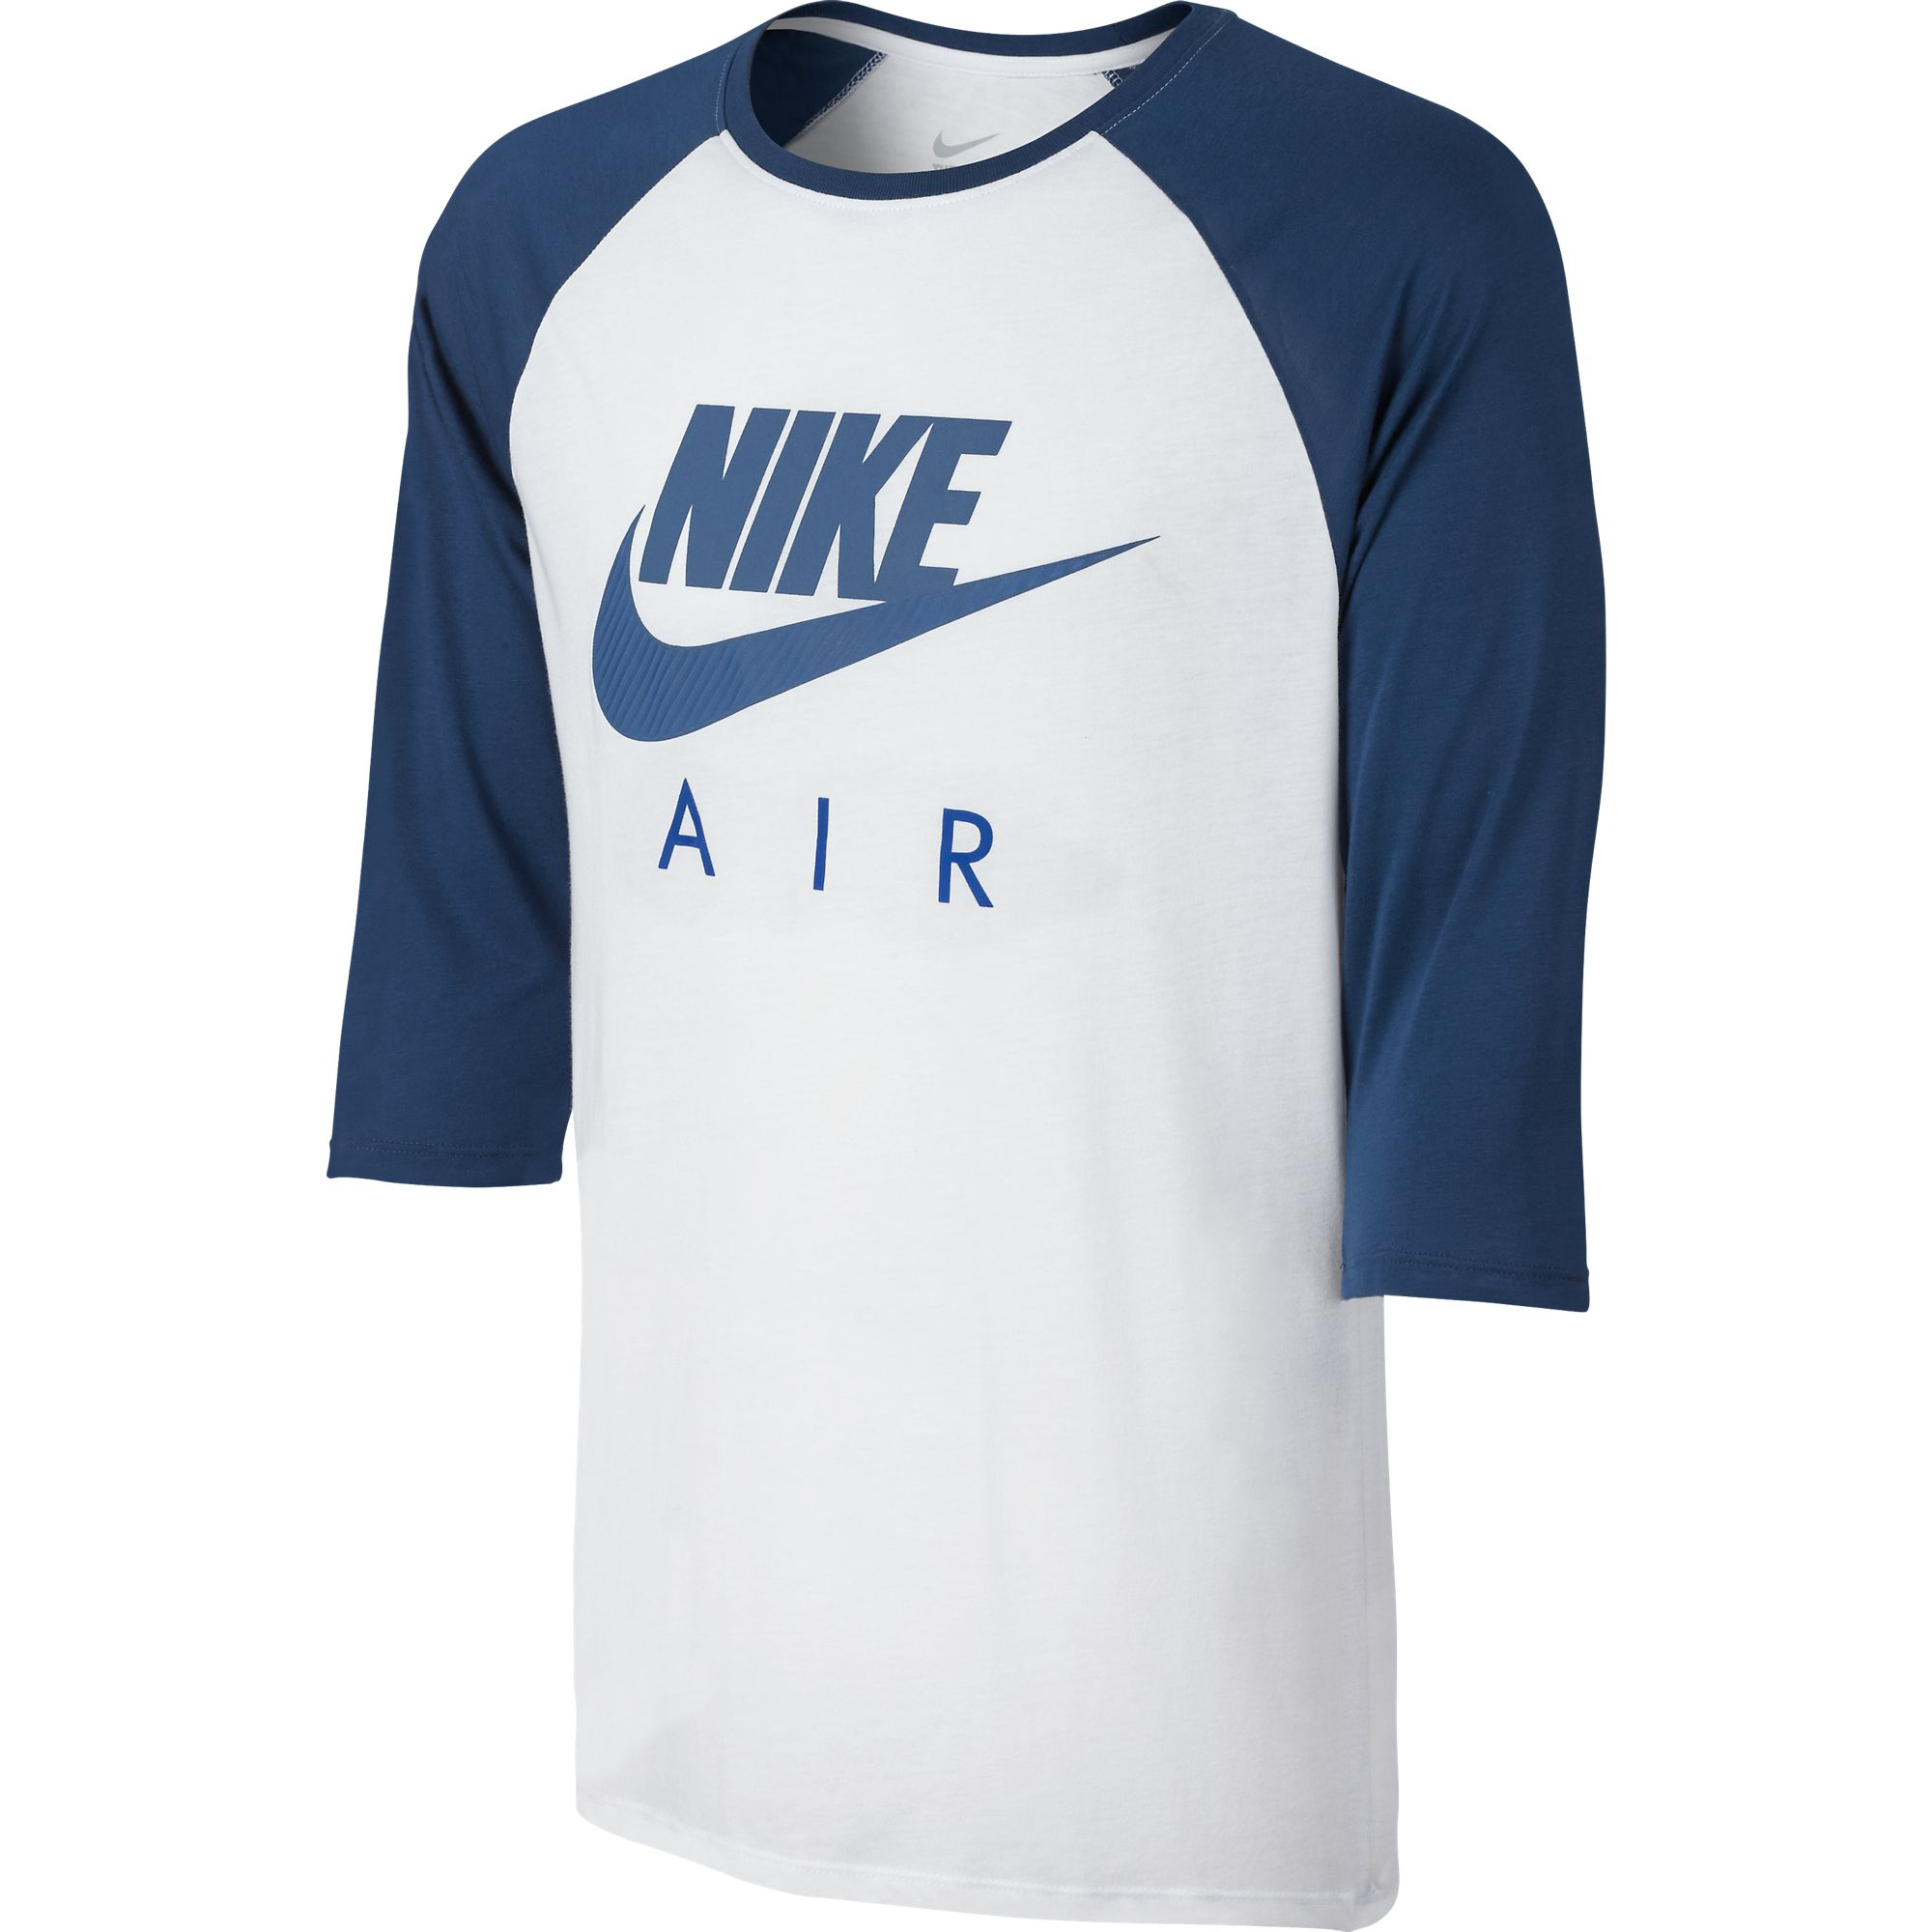 Nike Air Long Sleeve Raglan Men 39 S T Shirt White Blue